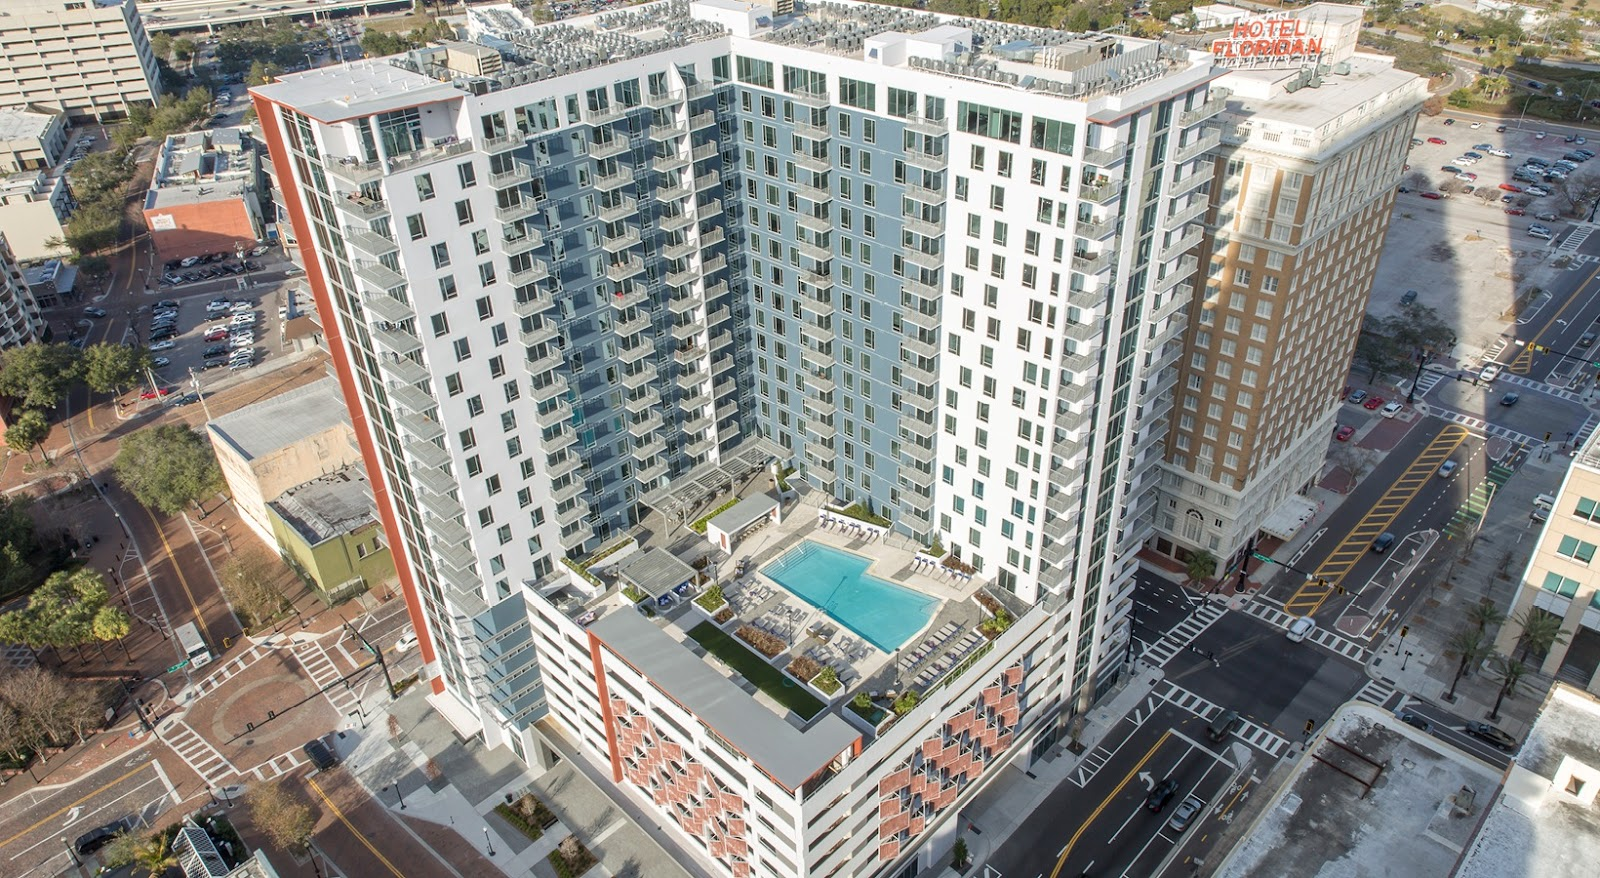 Apartment Drone Photo Example | 6 Reasons Apartment Community Needs Professional Photography